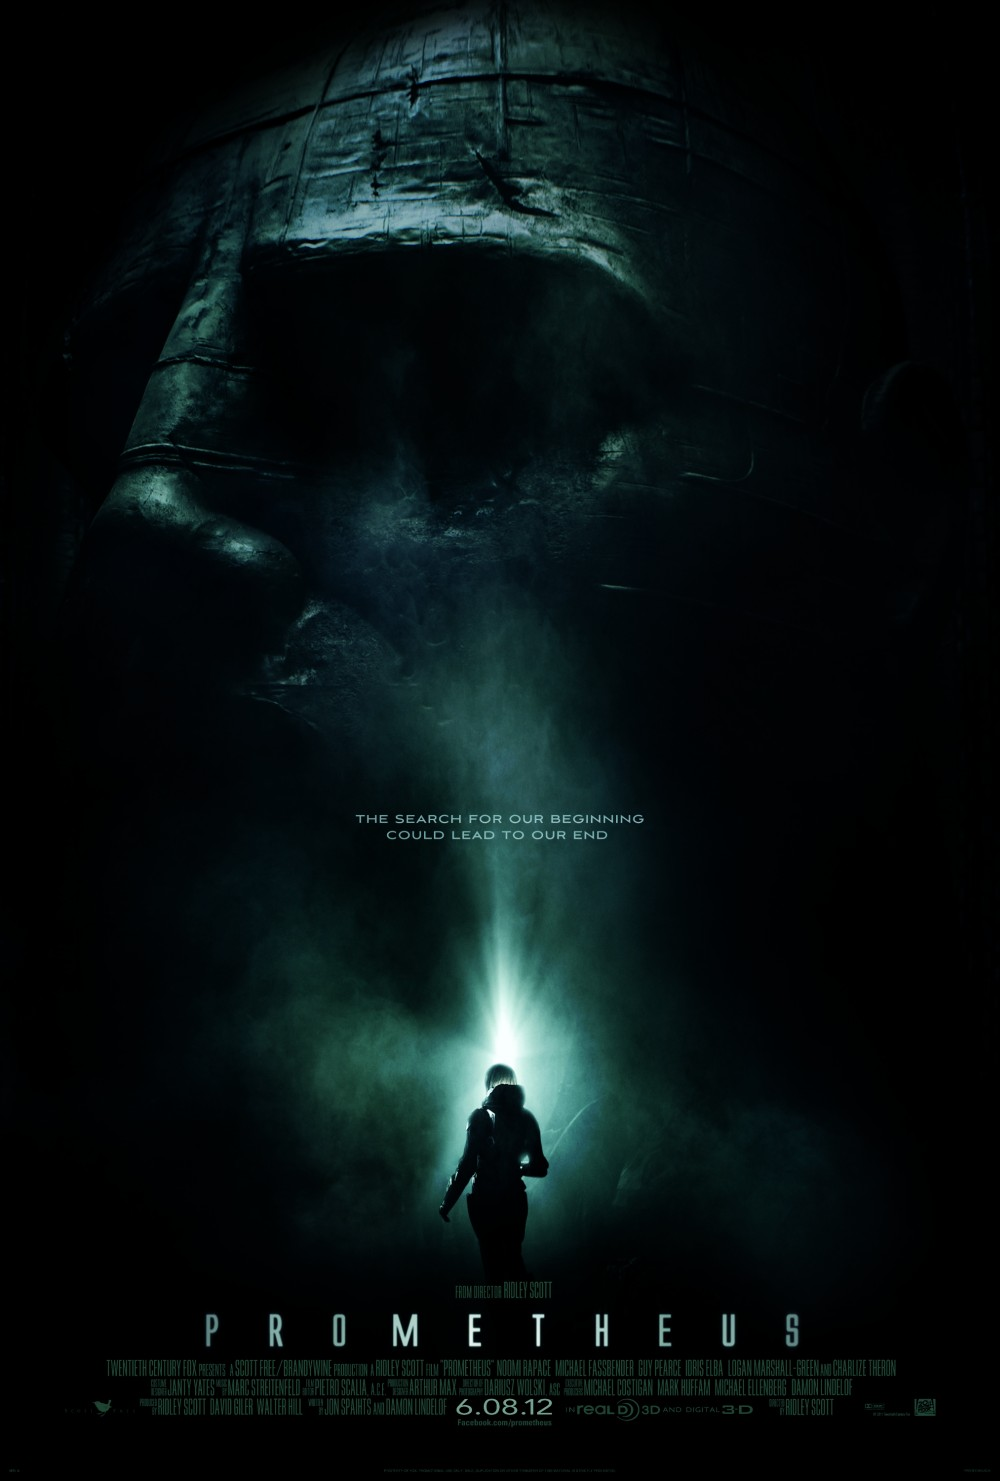 First Prometheus Poster Revealed [Updated]